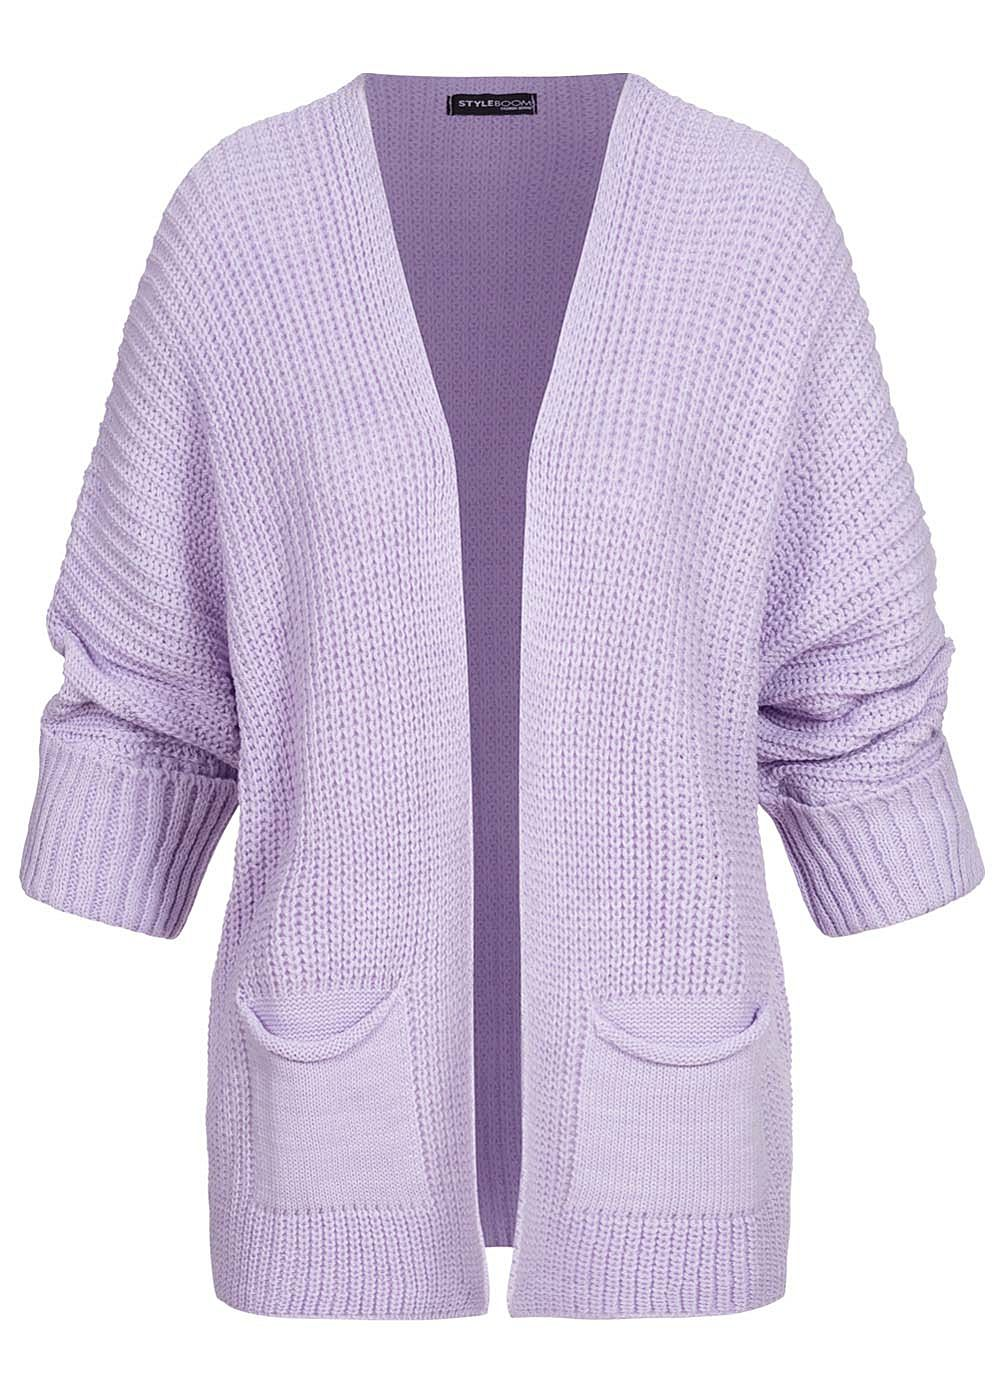 Styleboom Fashion Damen Oversized Strickcardigan 2-Pockets lila - Art.-Nr.: 20086308